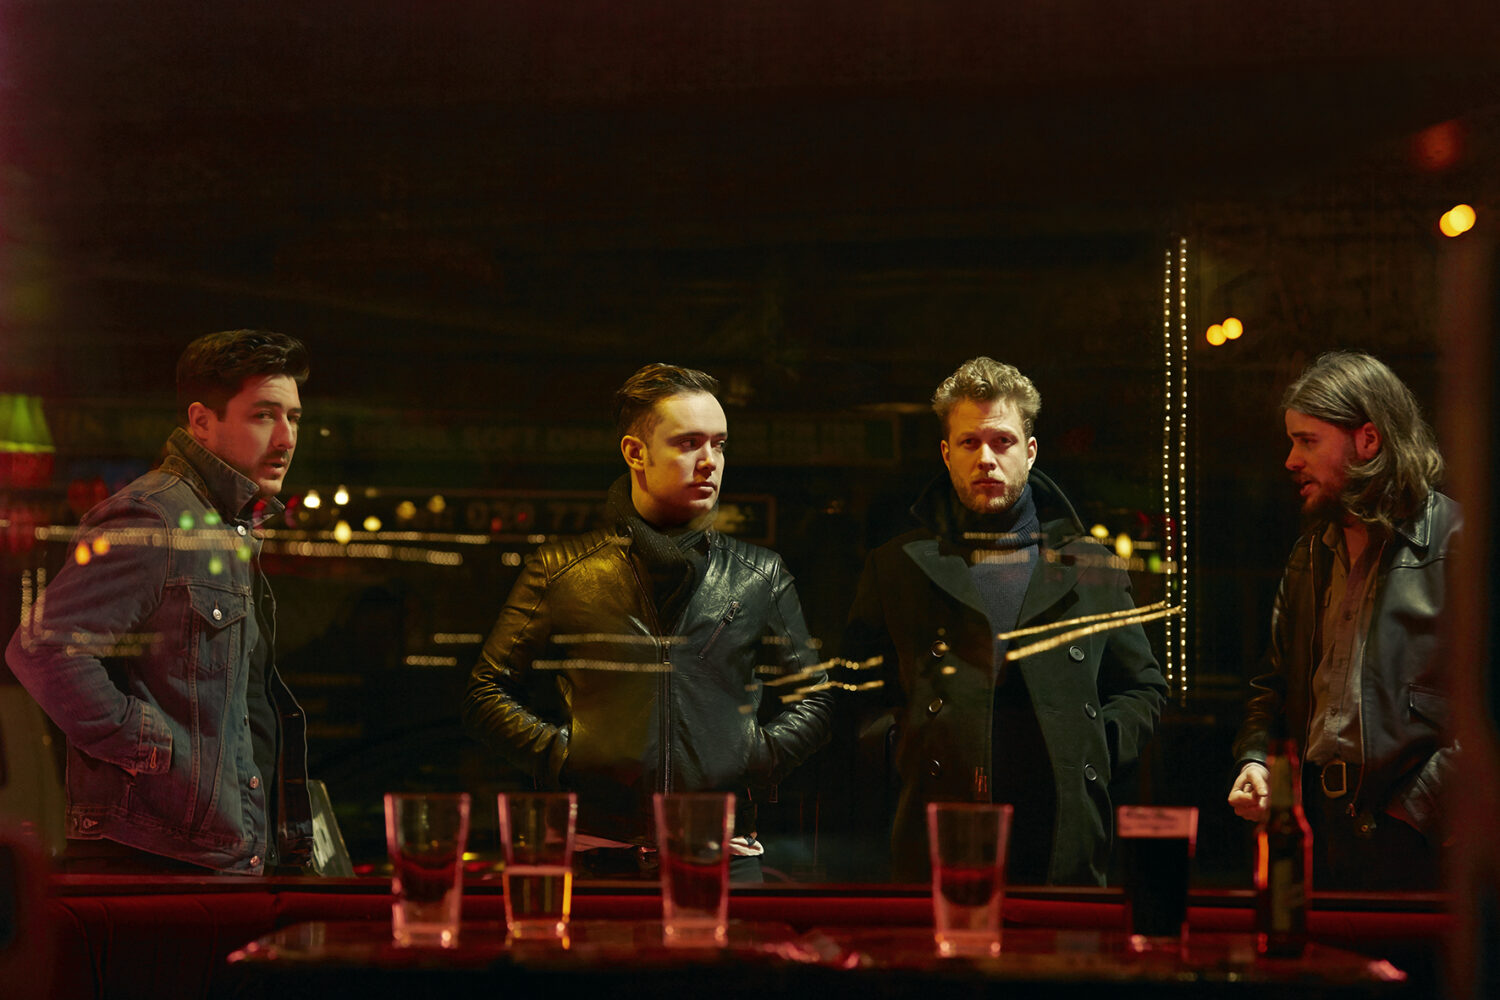 Mumford & Sons play tiny London show, debut new song 'Believe' tonight